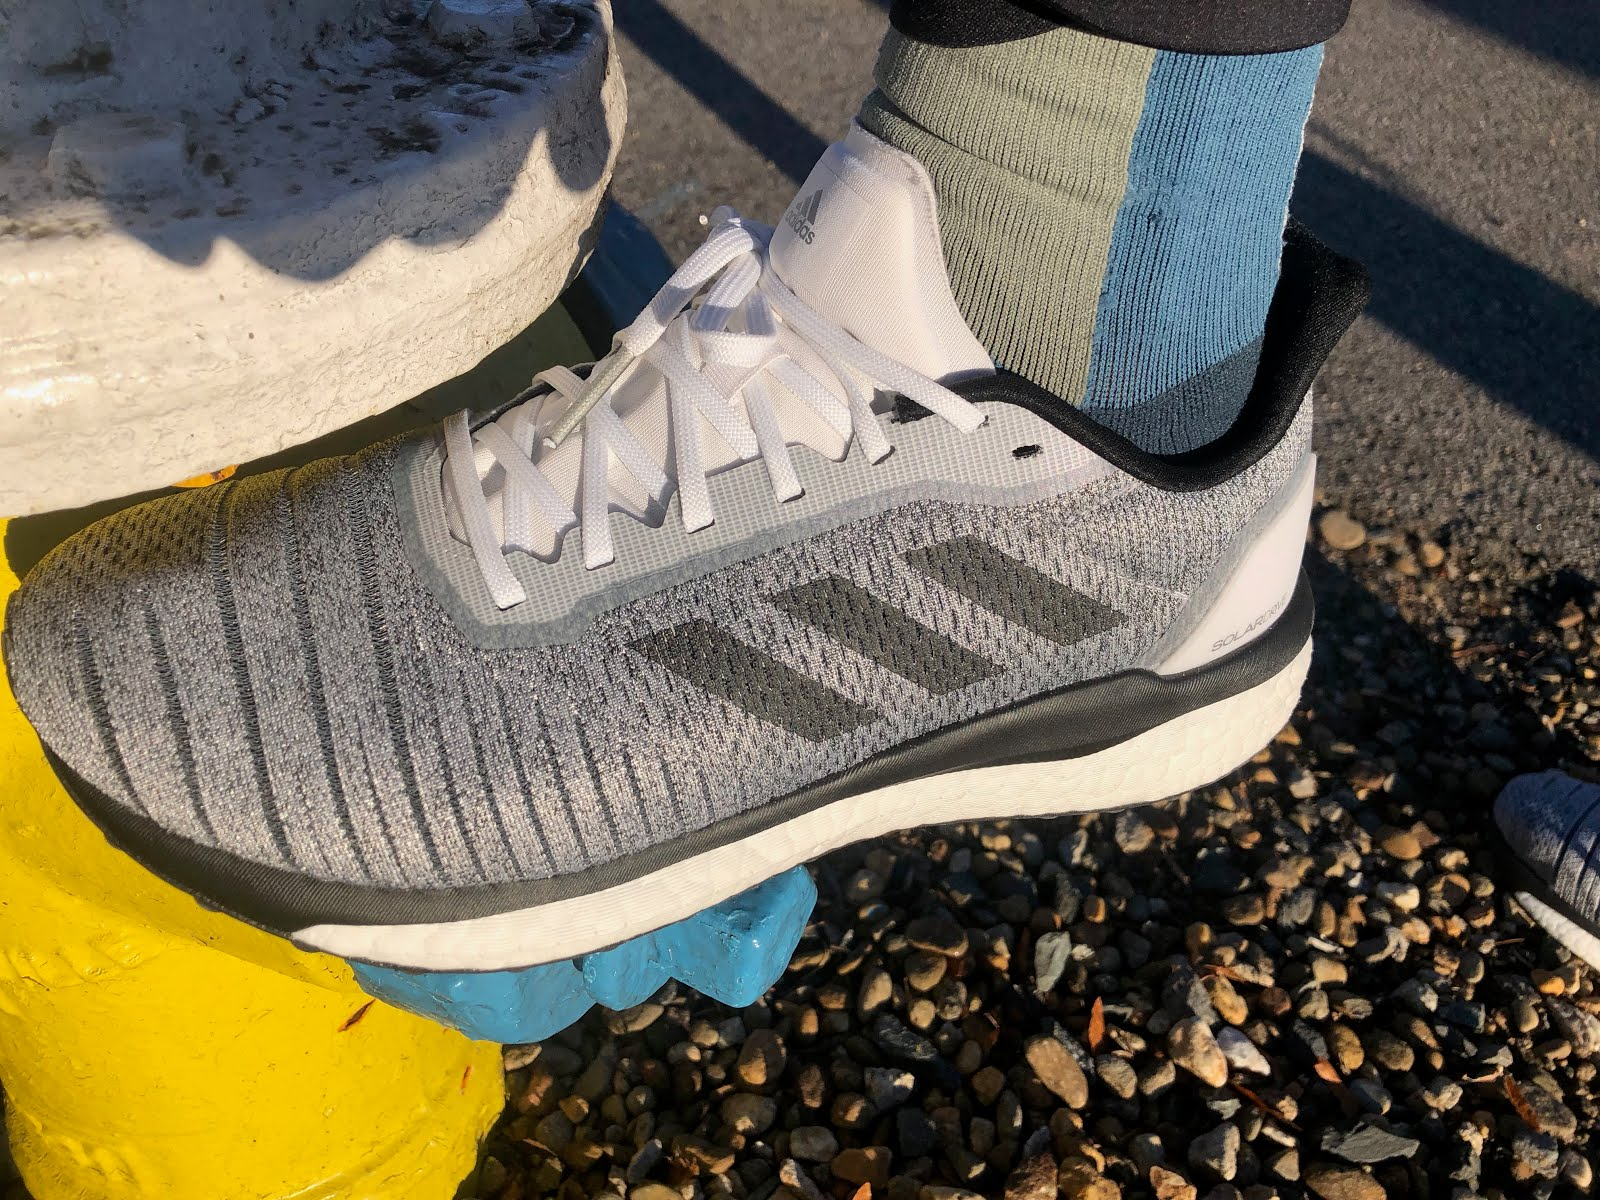 Fracción Prefacio internacional  Road Trail Run: adidas Solar Drive Review: Durable, Soft and Easy Trainer  with a Cage Free Upper Gets the Job Done